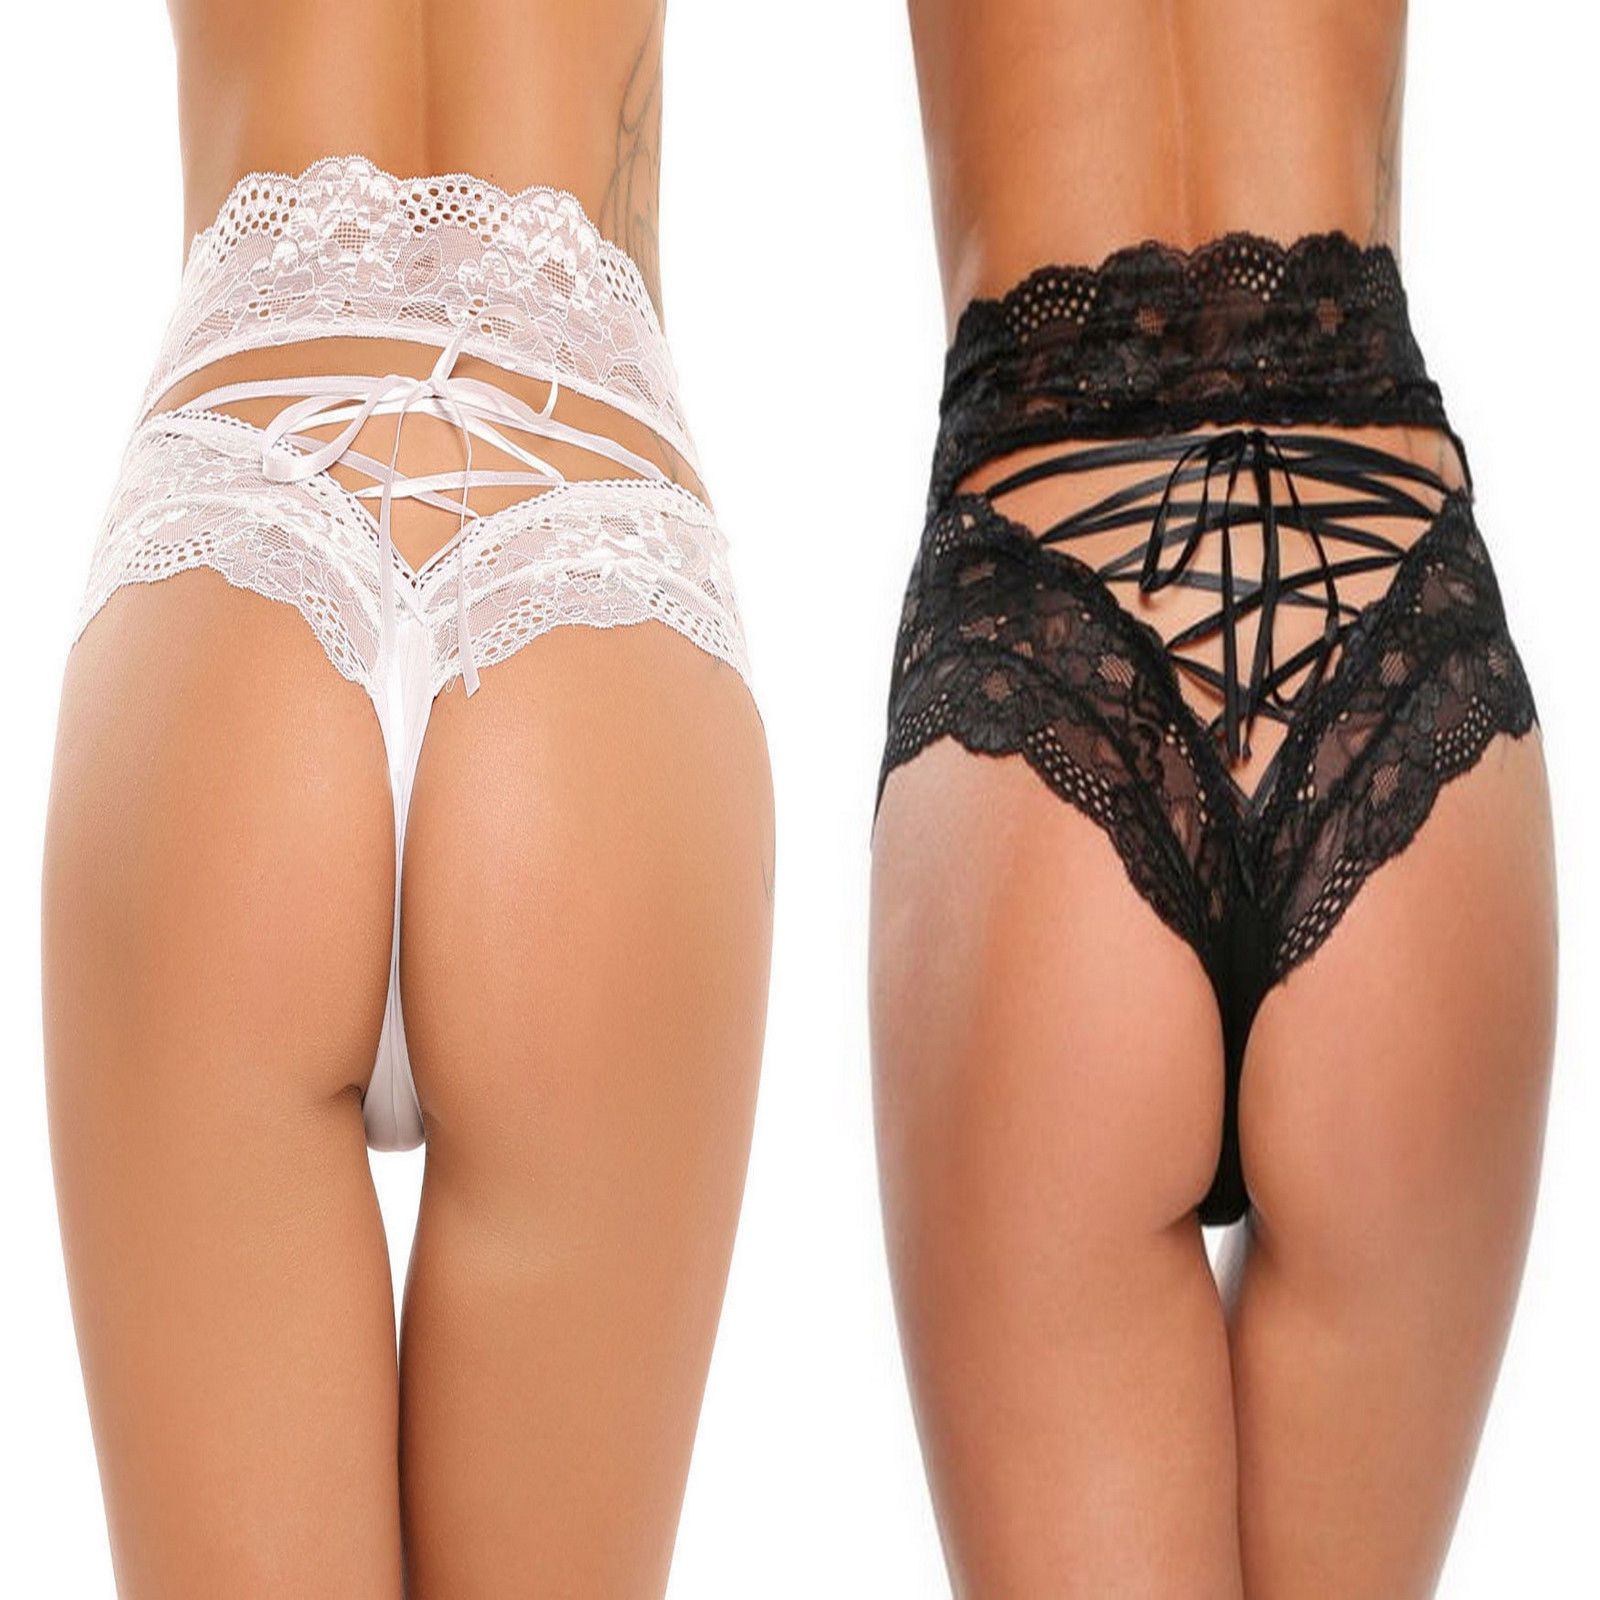 b0bec2133 SEXY WOMENS LINGERIE LACE BRIEFS WITH LACE UP BACK PANTIES UK 8 10 12 14 16  This fabulous lace high-waisted thong creates a beautiful silhouette.